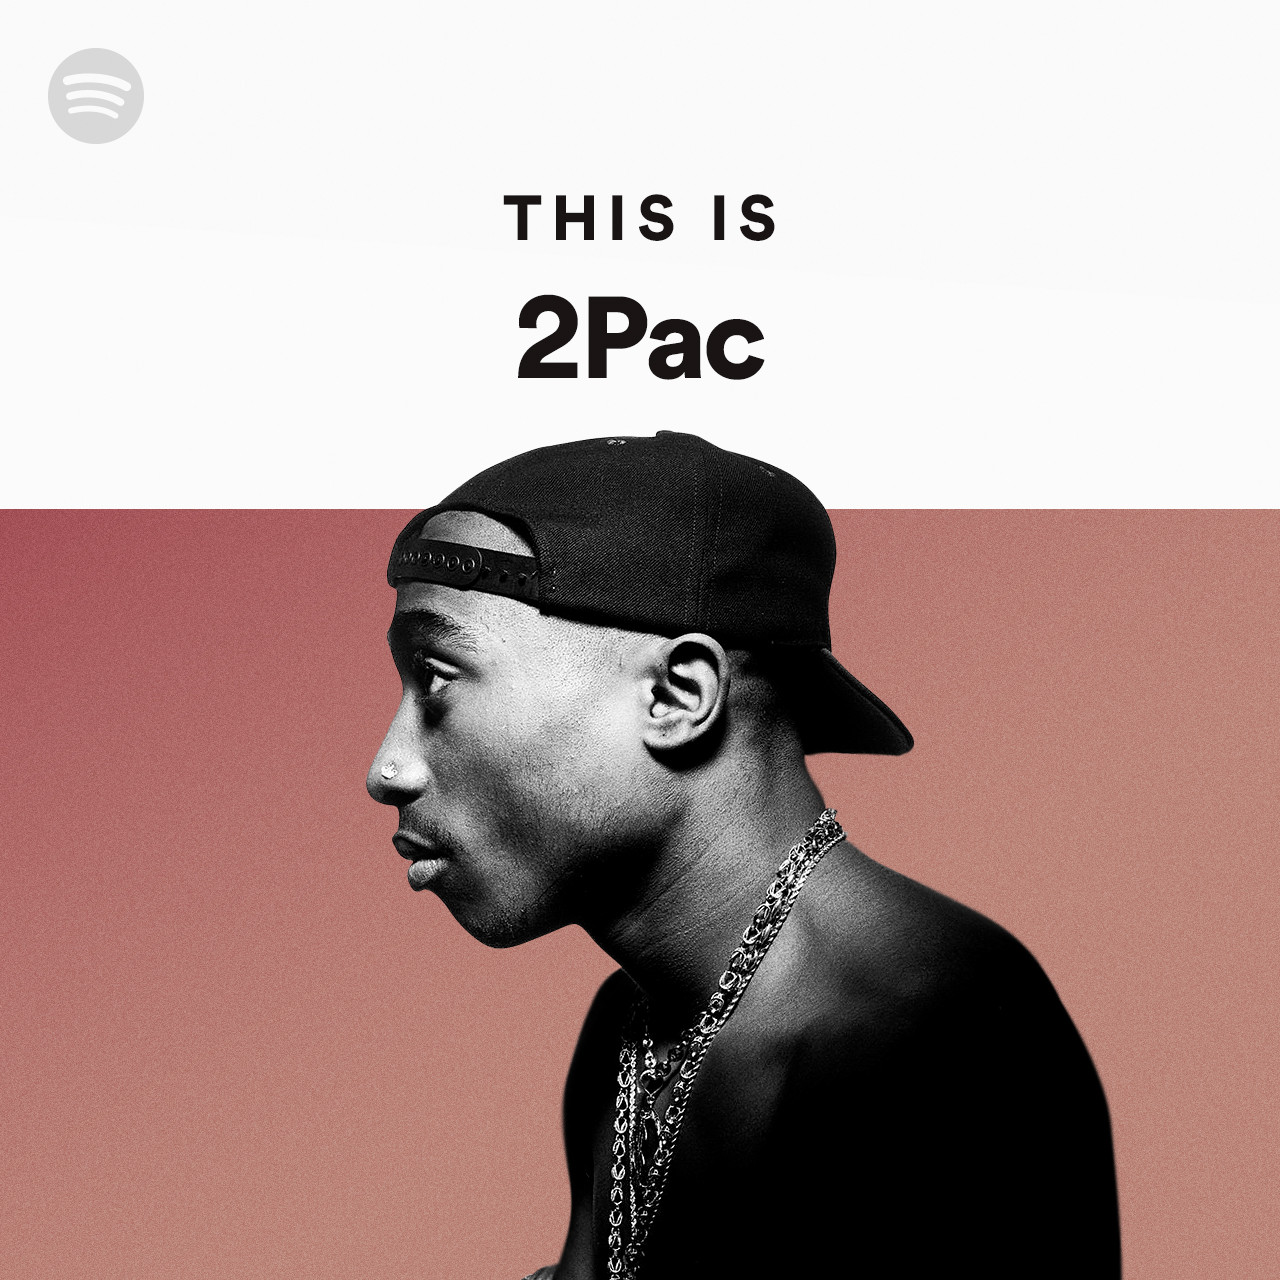 This Is 2Pac on Spotify